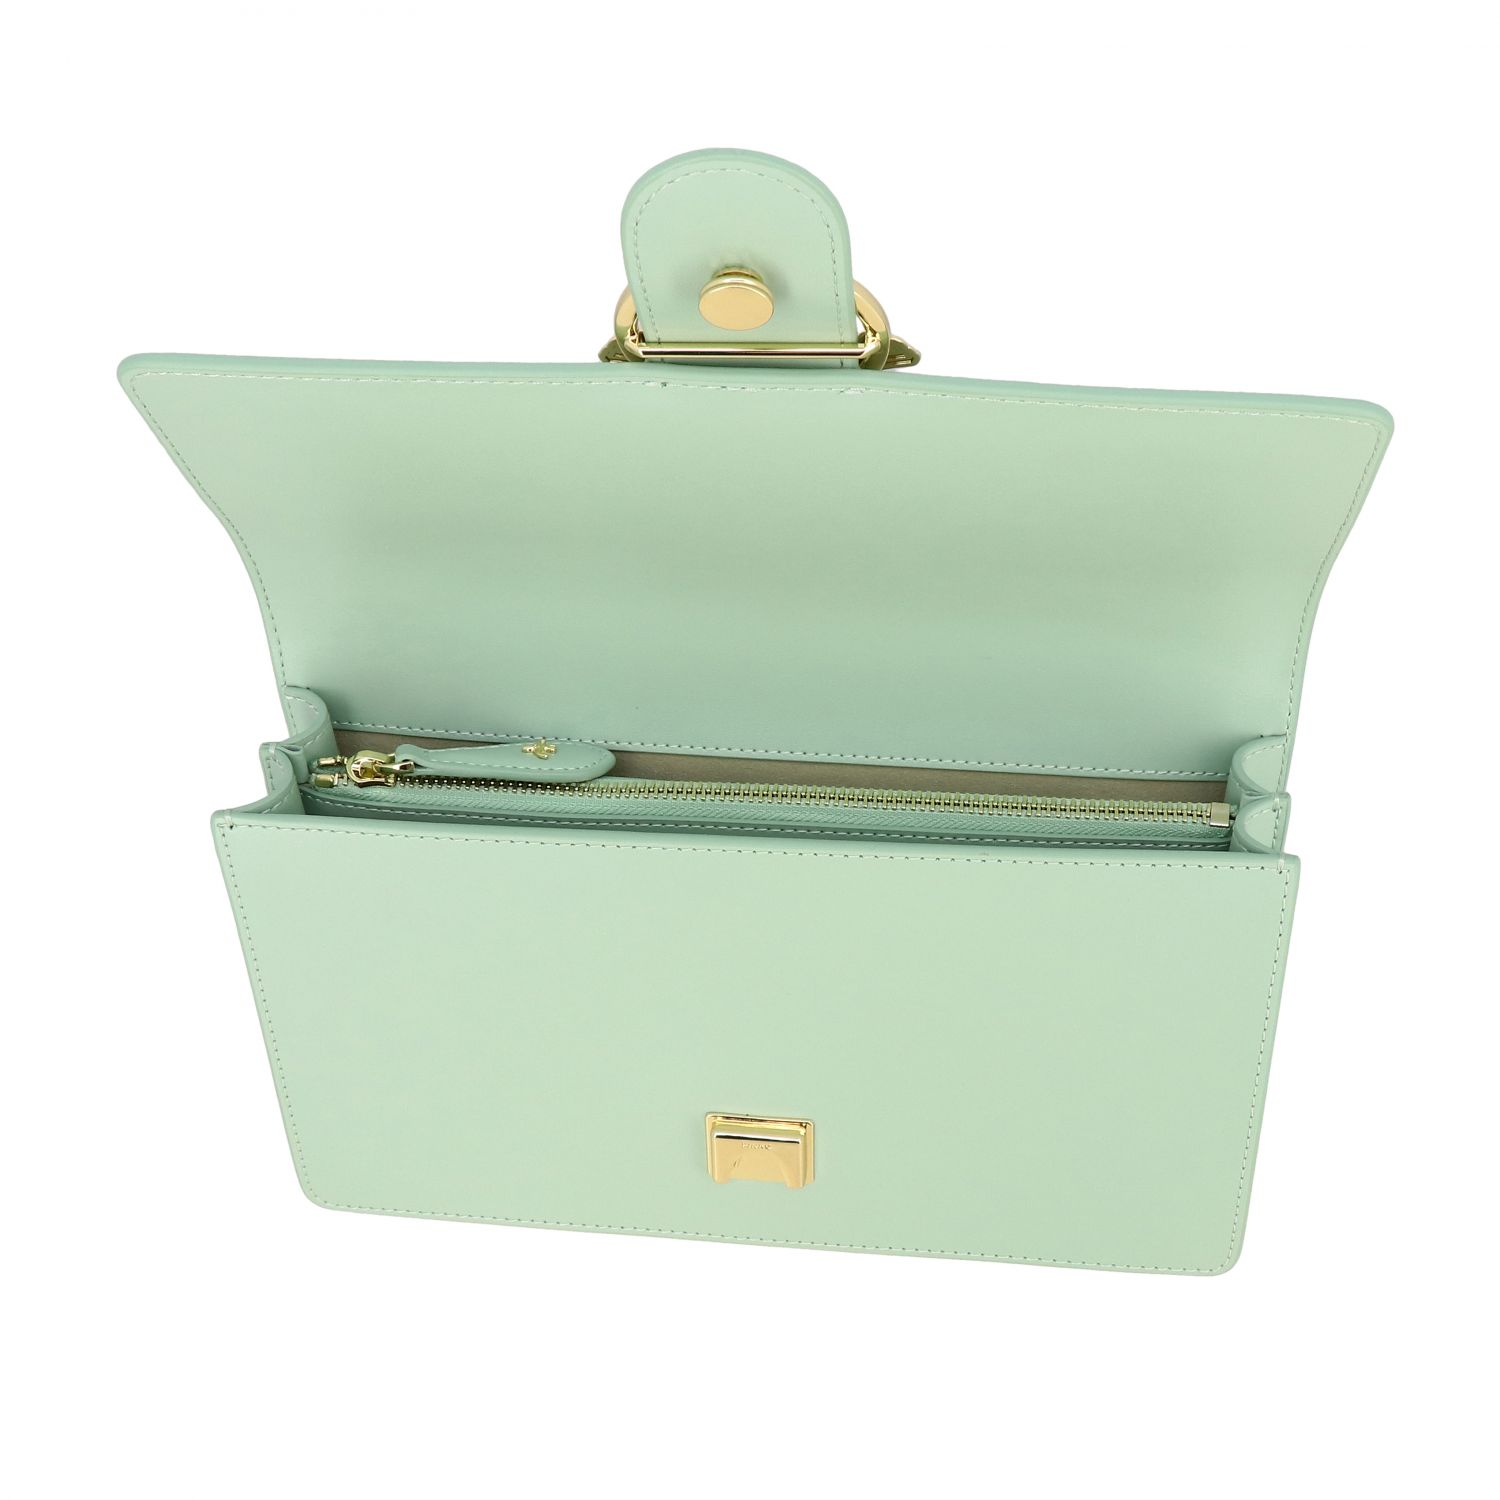 Borsa Love classic simply Pinko in pelle acqua 5